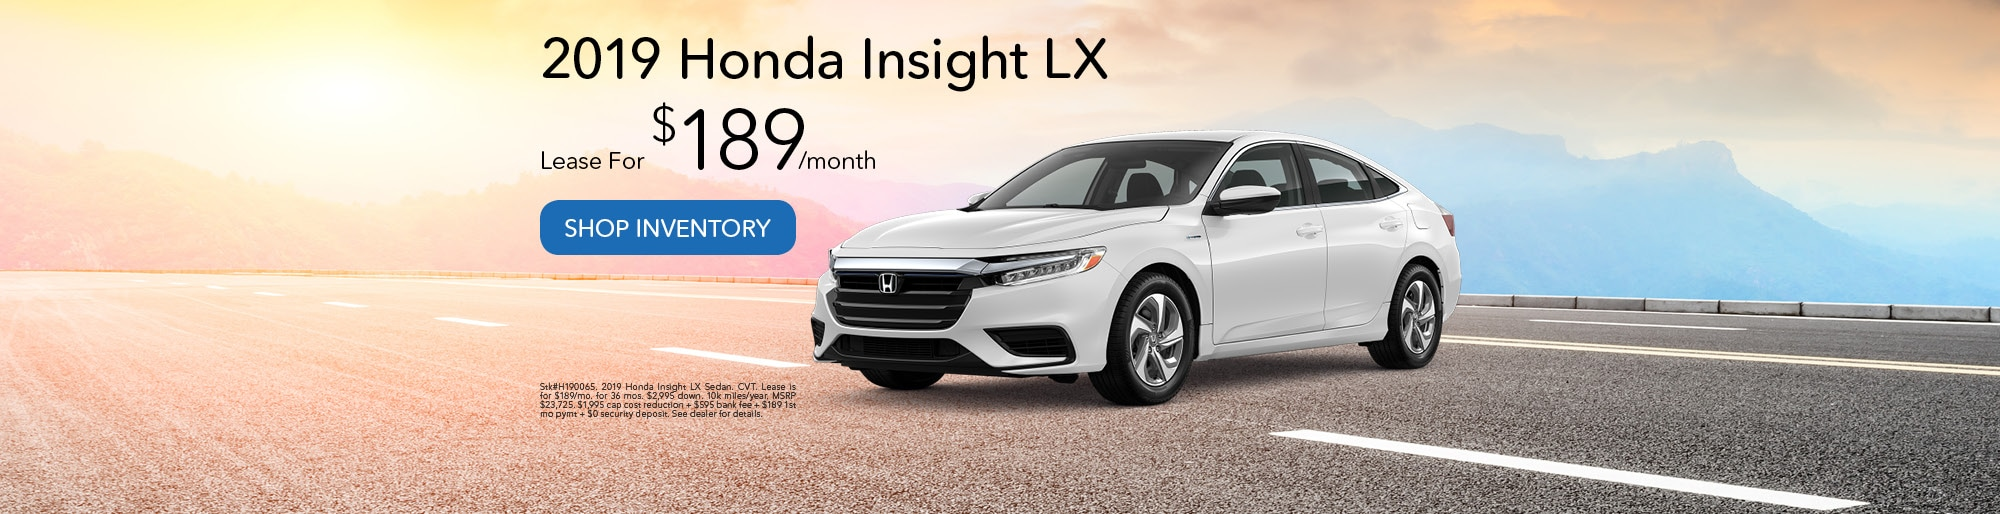 Honda Dealers Nj >> New 2019 Honda Used Car Dealer In Pompton Plains Nj